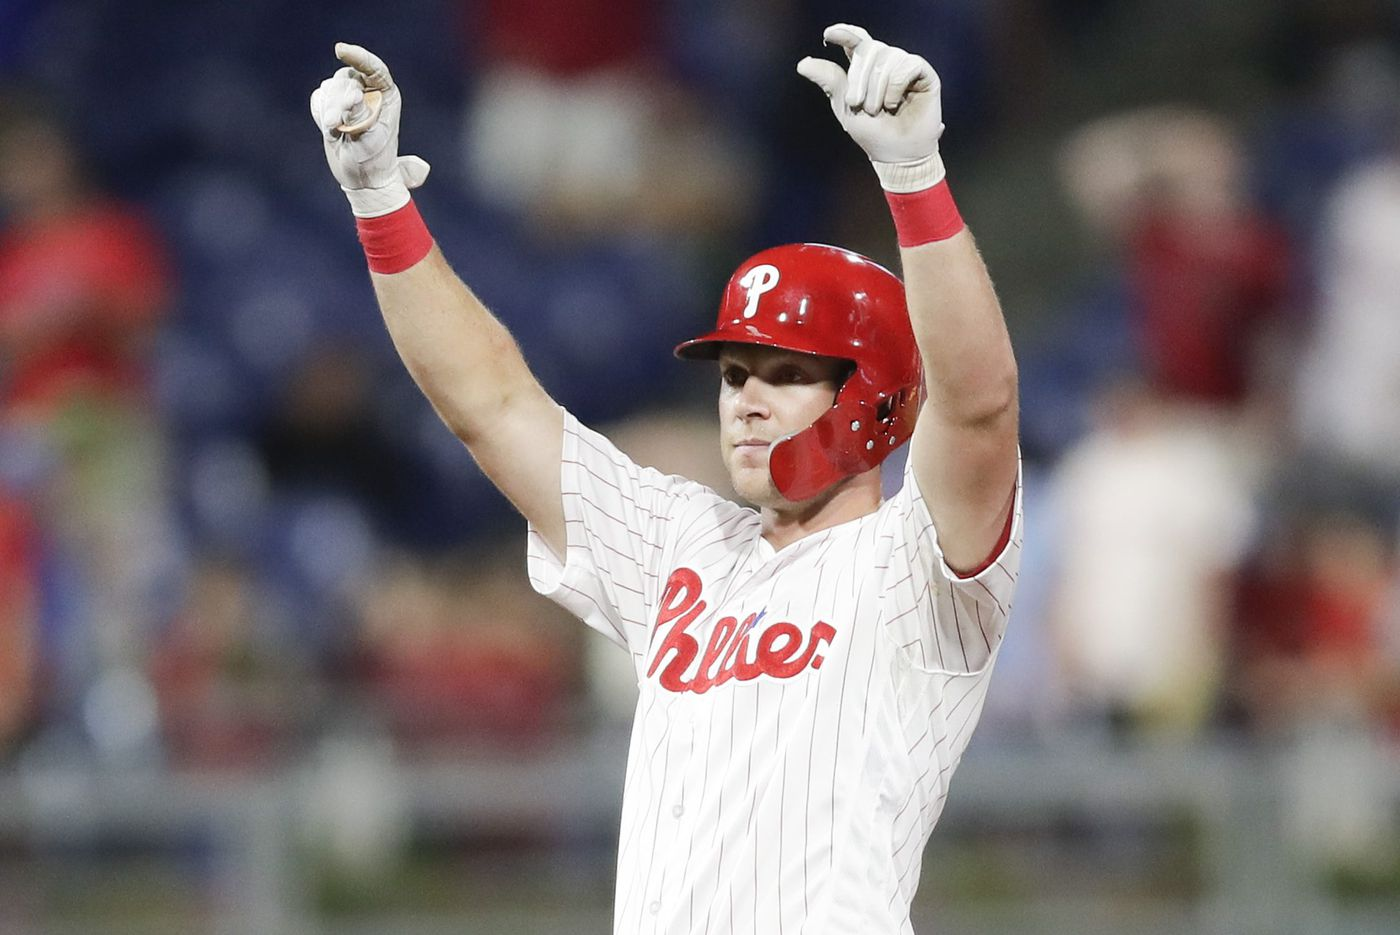 The Phillies' magic number is 90 | Extra Innings